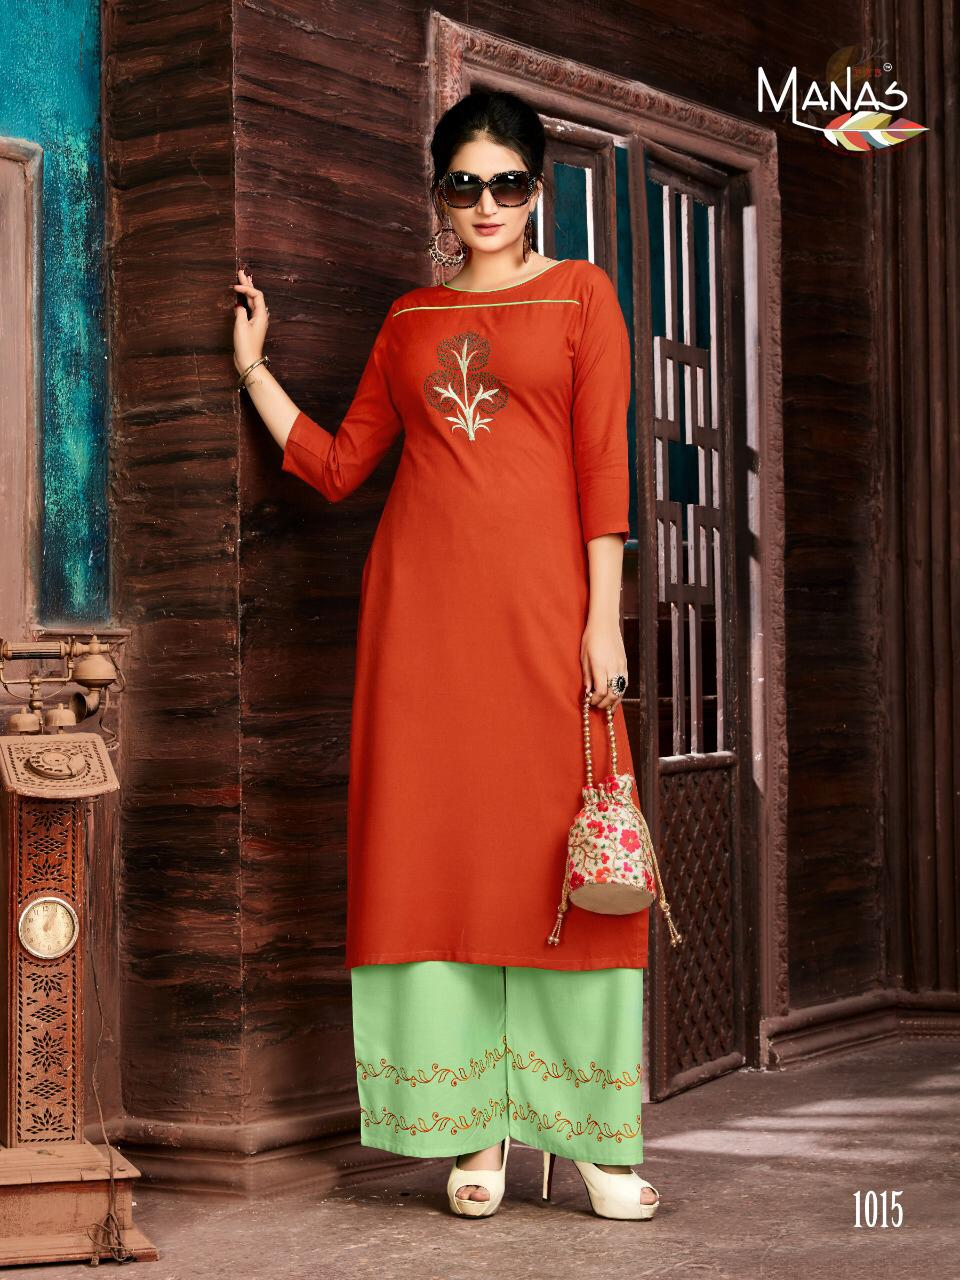 Manas Anishka Vol 3 collection 8